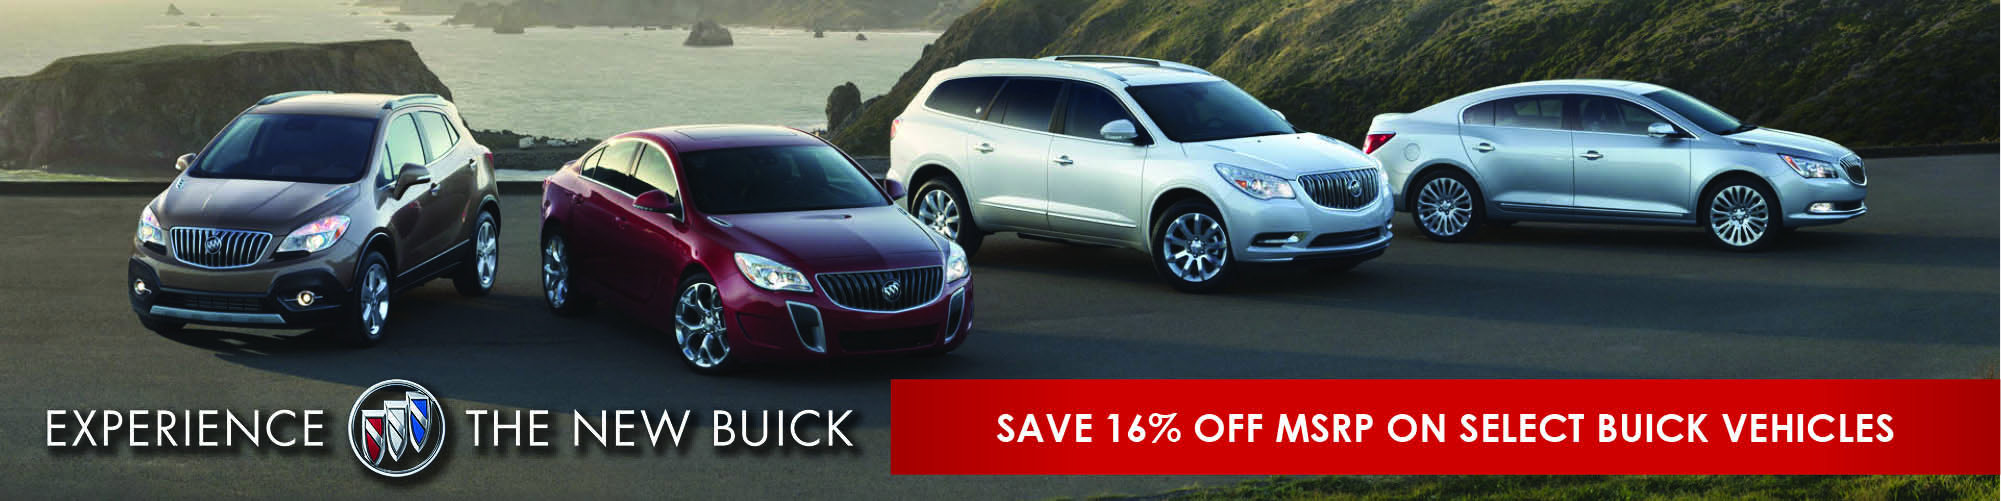 Save 16% off MSRP on select Buick vehicles.